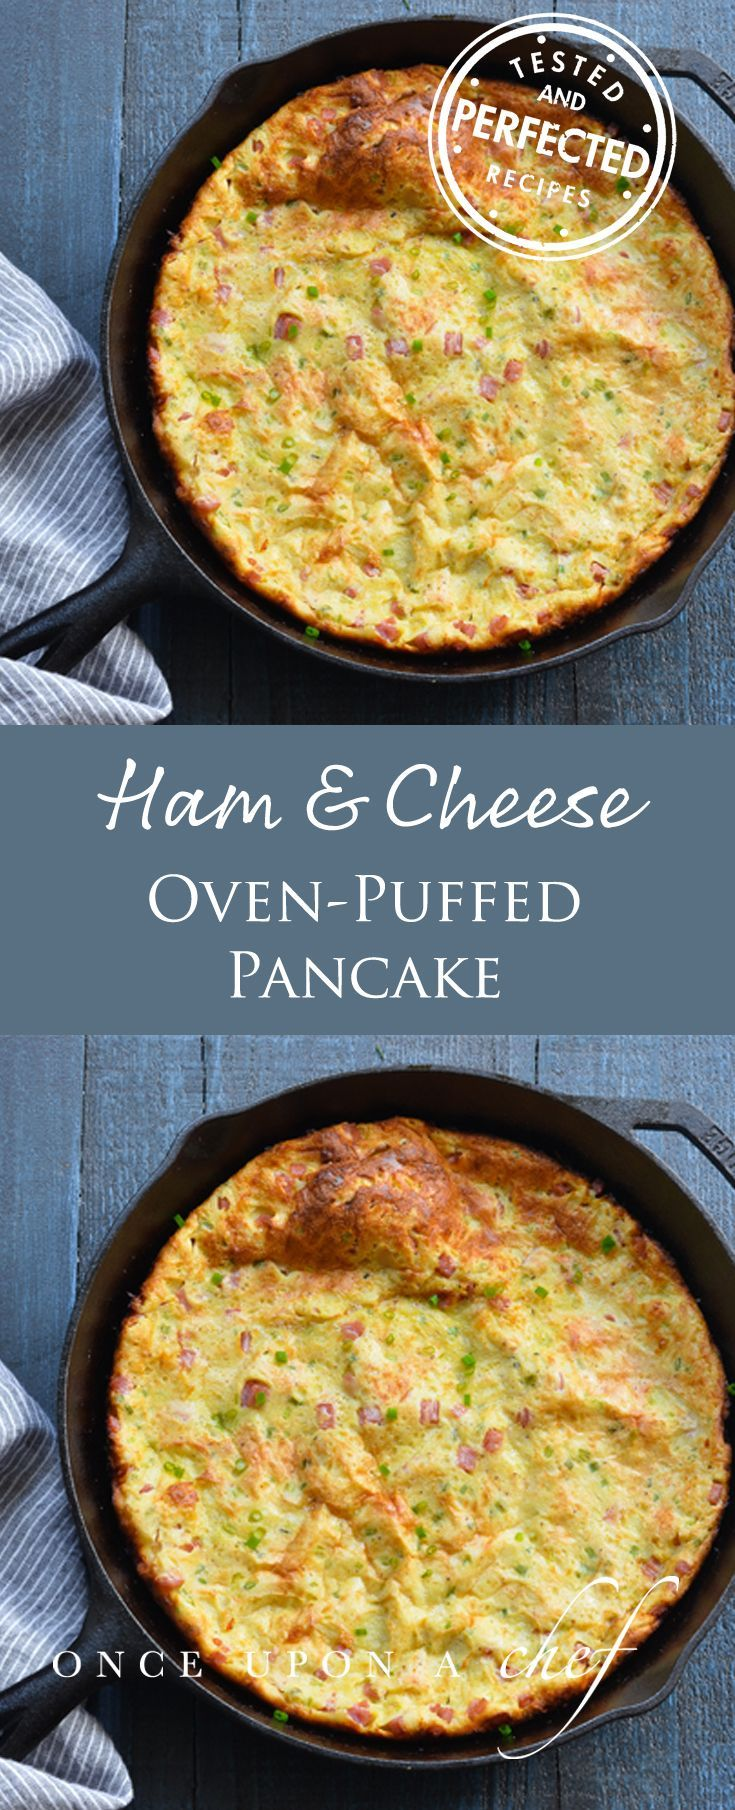 Ham & Cheese Oven-Puffed Pancake - The inspiration for this ham and cheese oven-puffed pancake comes from my latest cookbook crush. I've kept the French theme and added a spoonful of Dijon, some chopped ham, grated Gruyere, and chives to make it a bit more substantial. So you can serve this version as a light dinner with mixed greens, too! #breakfast #dinner #dinnertime #delicious #frenchfood #testedandperfected